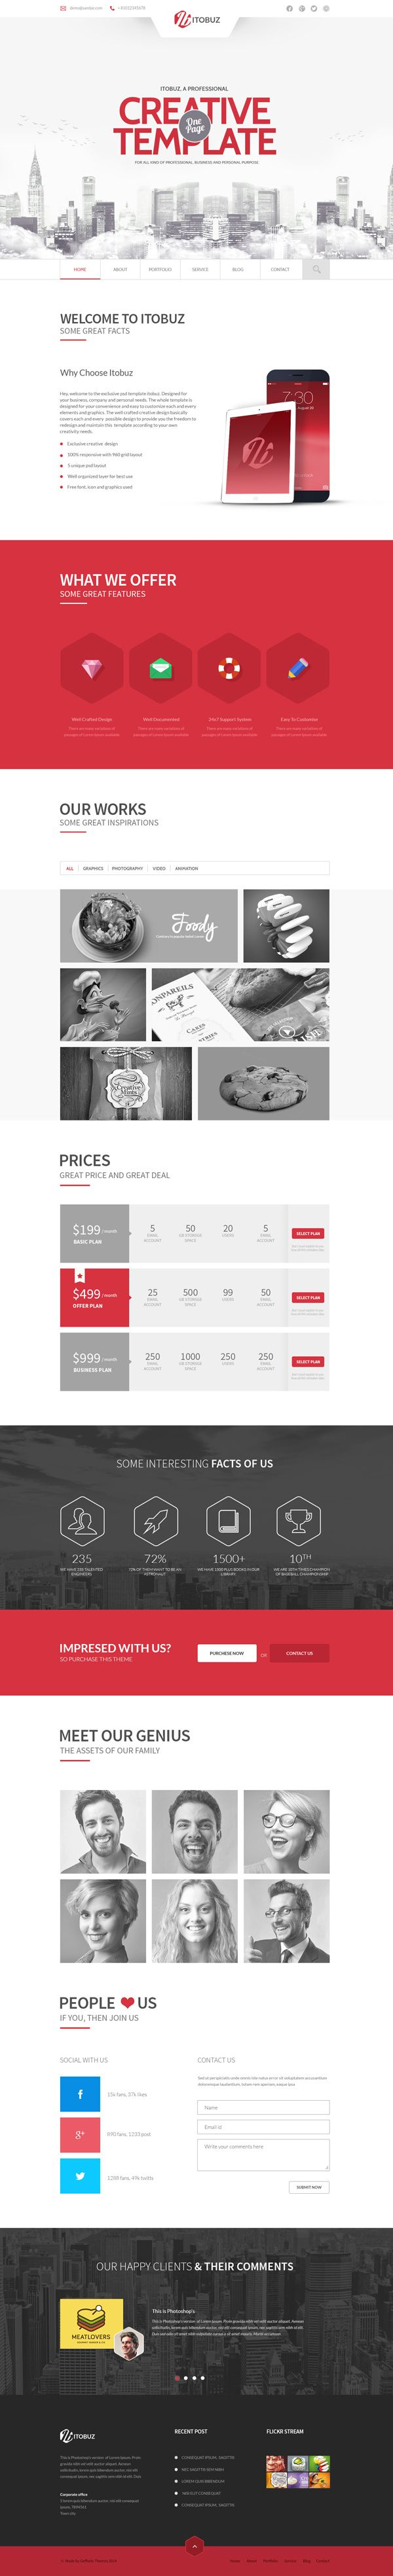 Itobuz one page psd template html5templates psdtemplates psd templates pinterest psd for Pinterest template psd